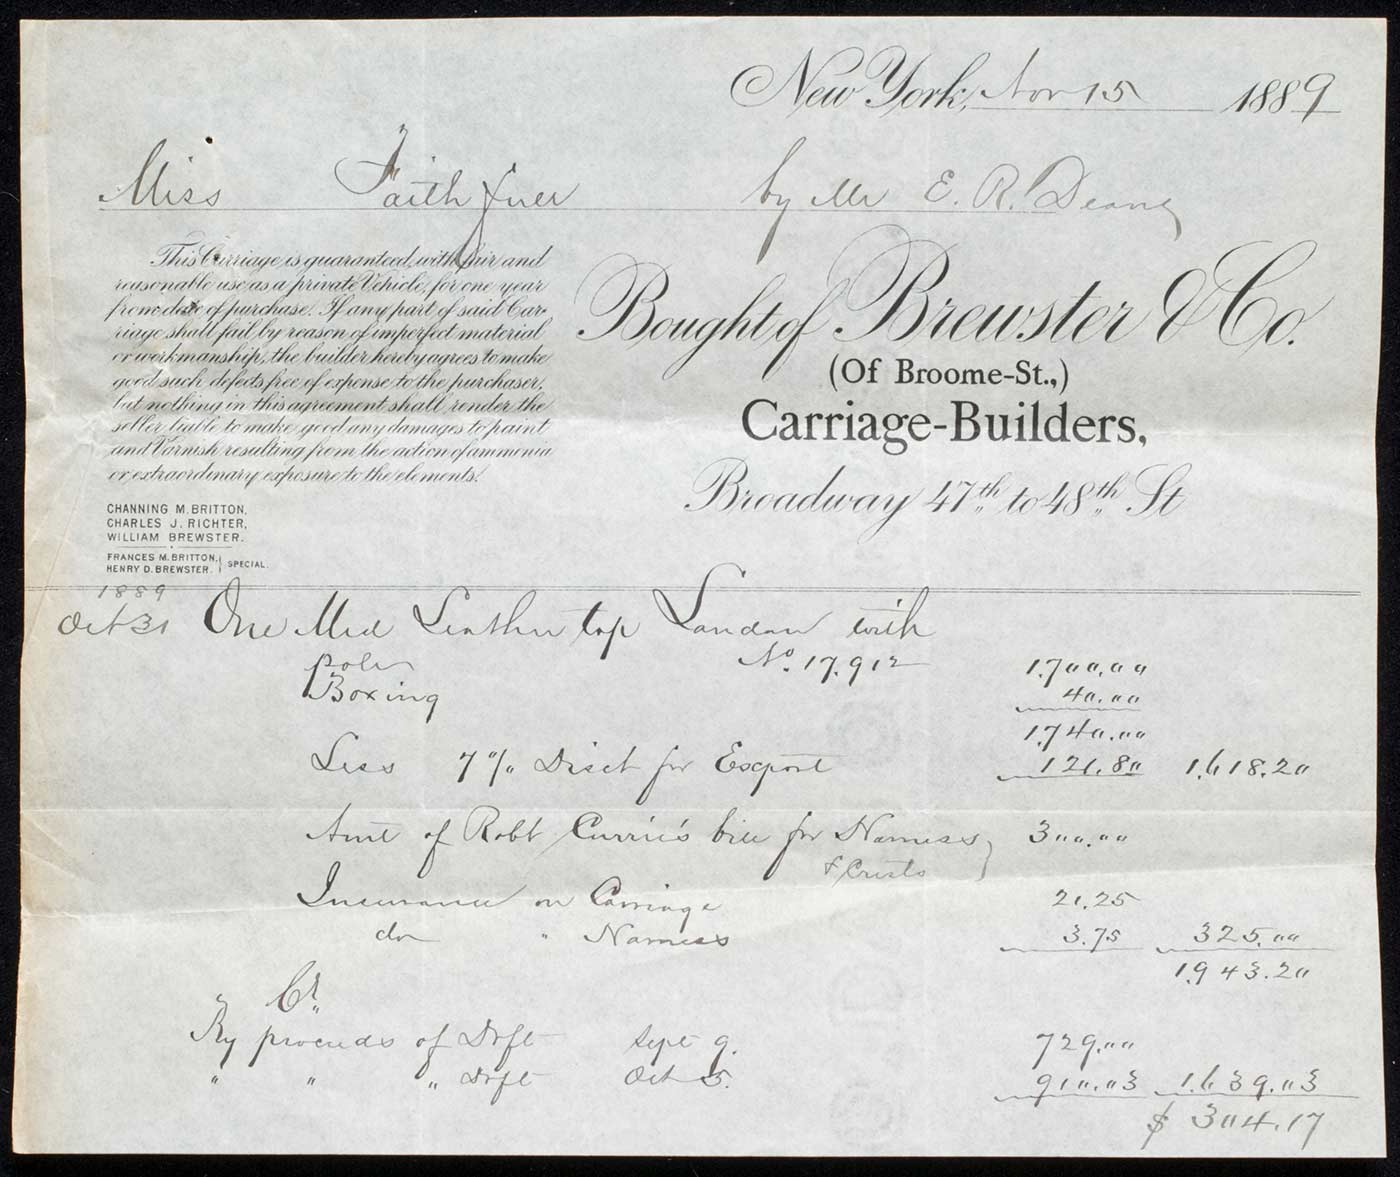 Receipt on letterhead of Brewster & Co. carriage builders completed in ink.